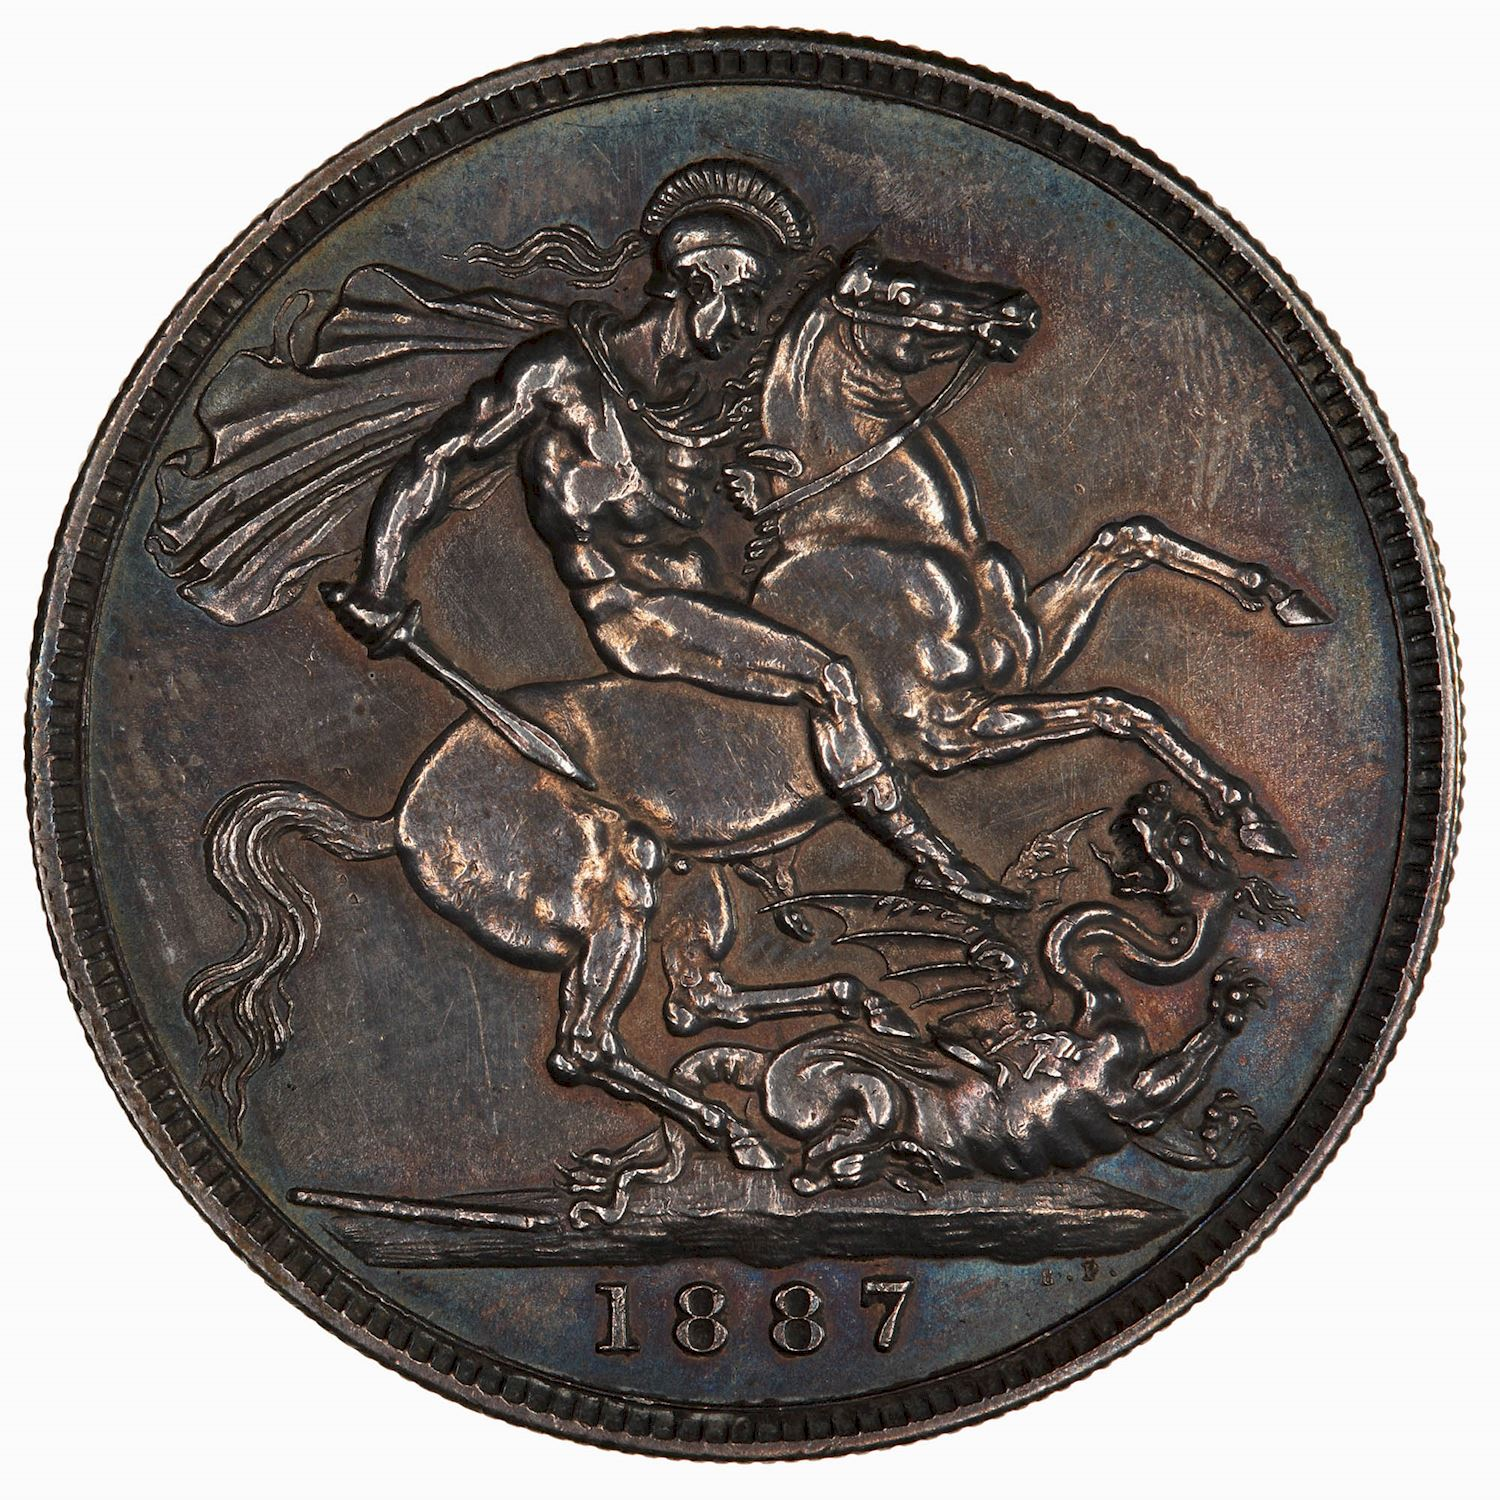 Crown 1887: Photo Coin - Crown, Queen Victoria, Great Britain, 1887